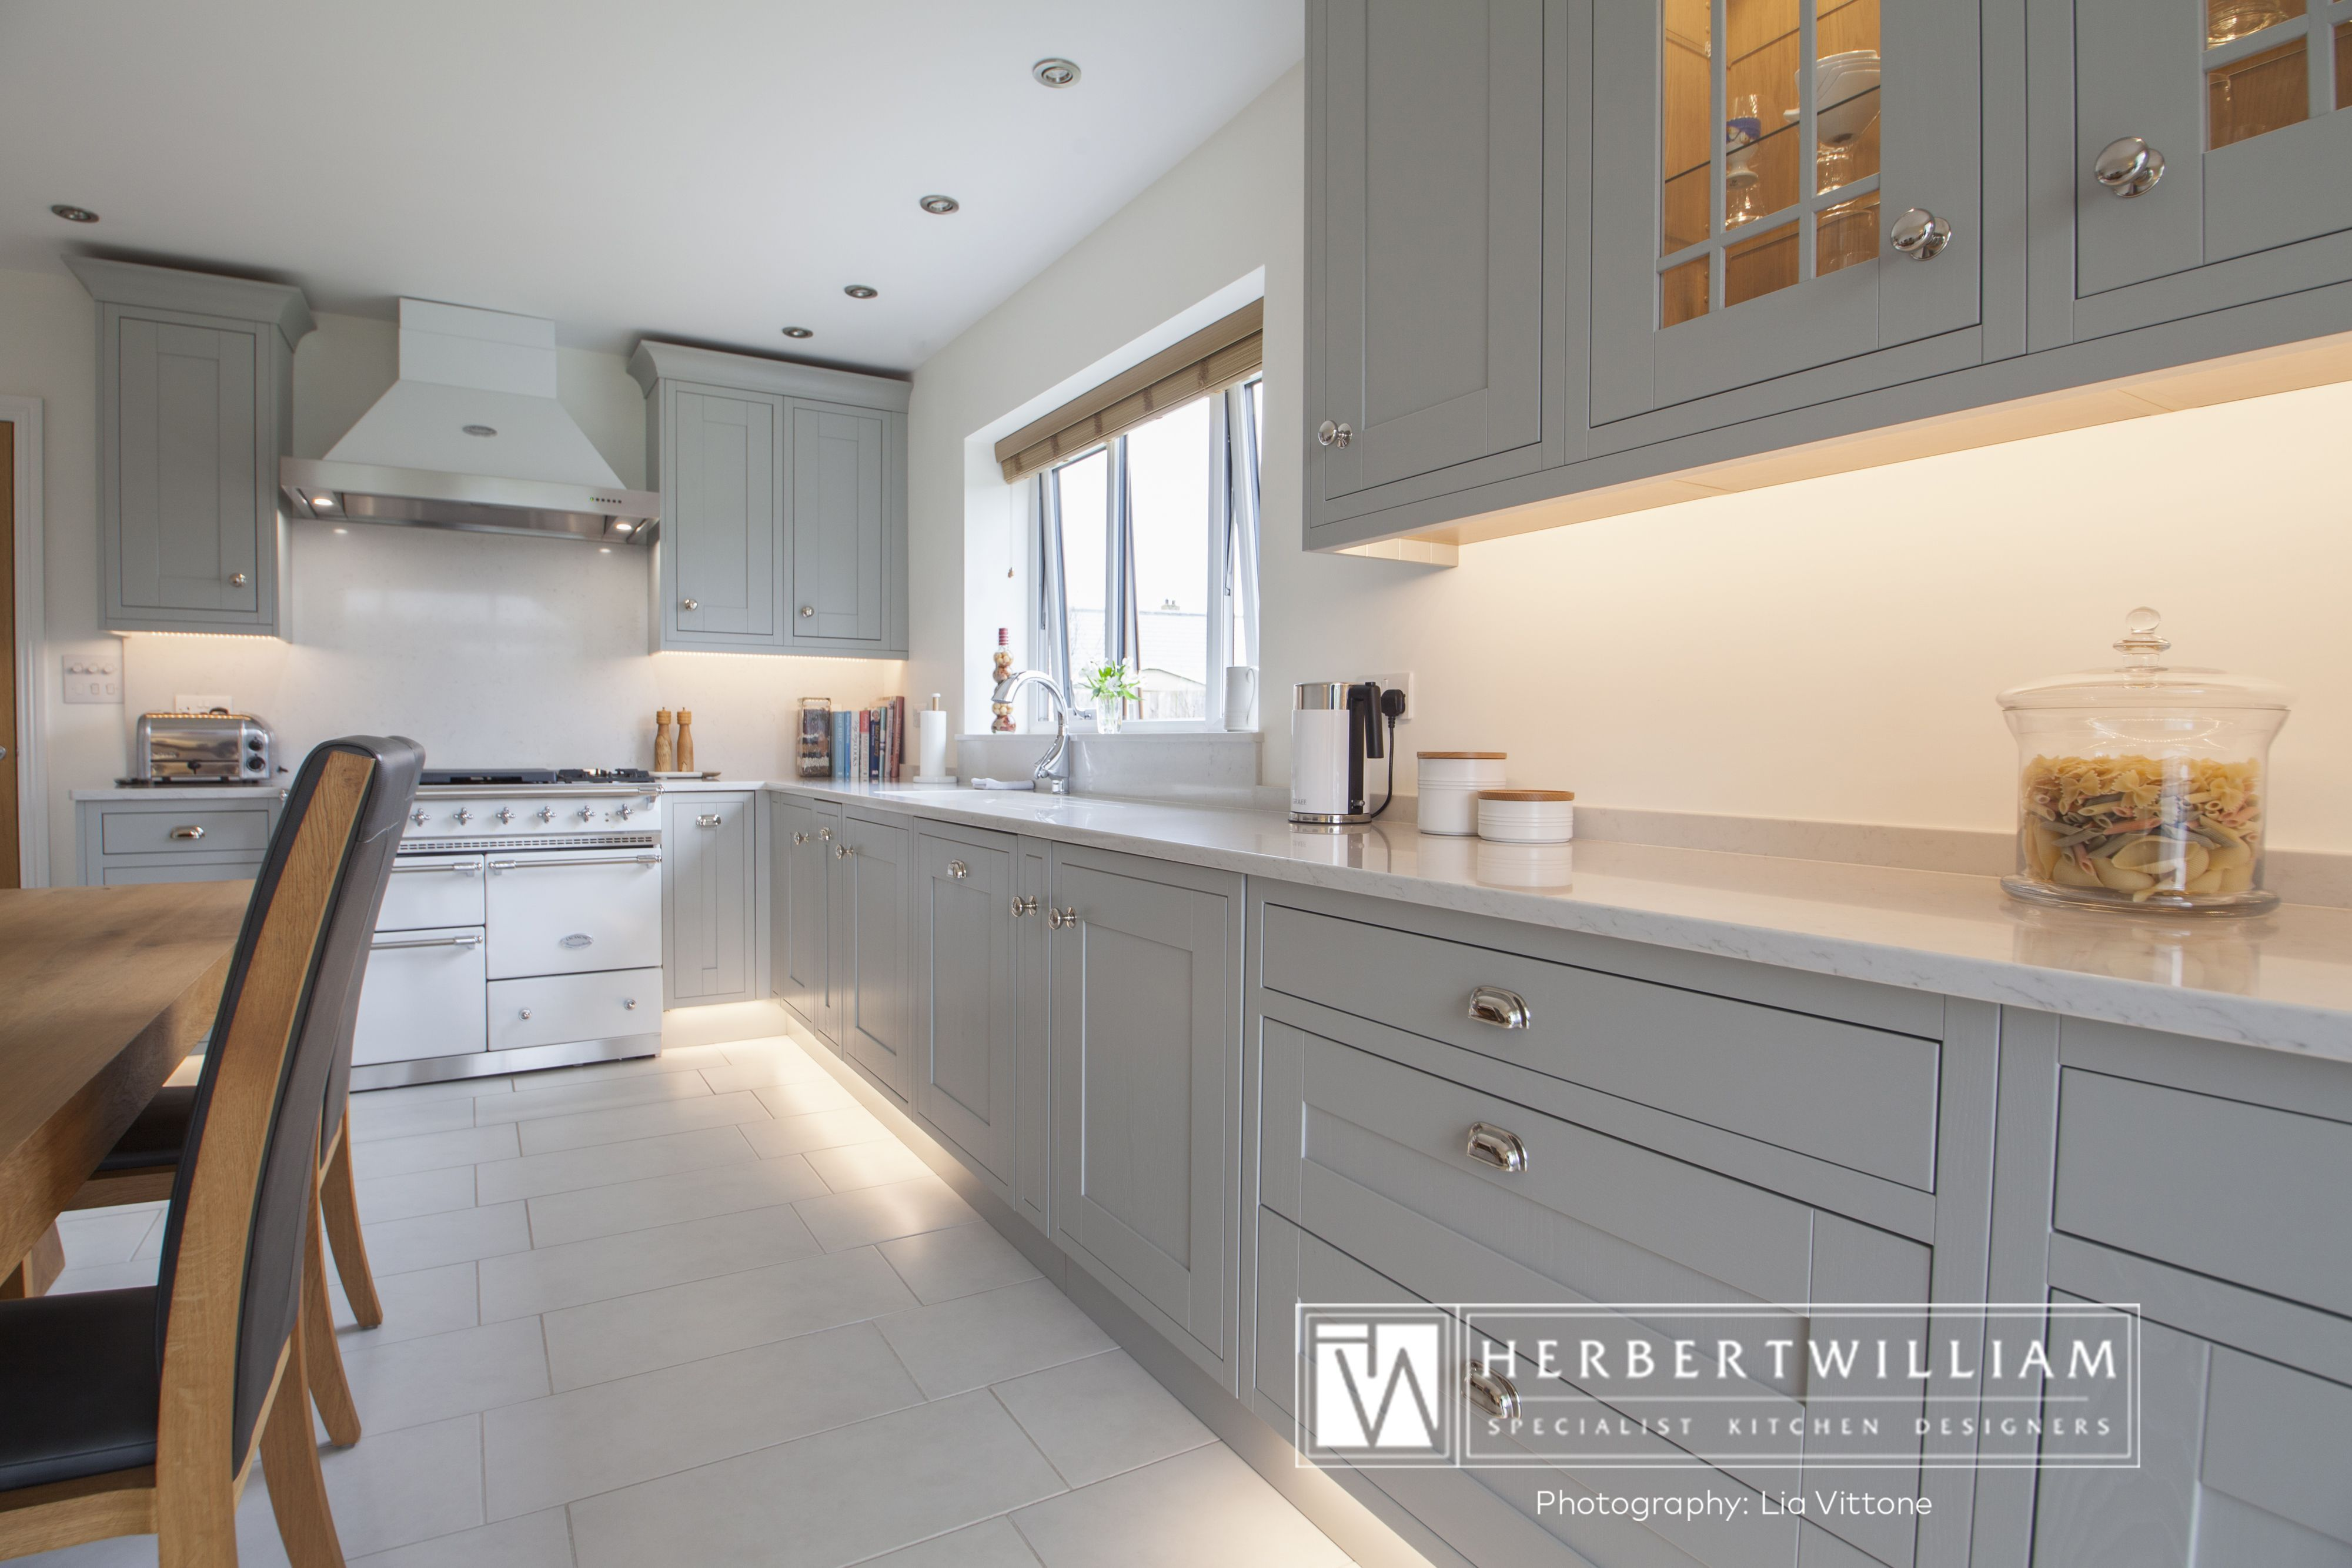 Light Grey Shaker Kitchen Design By Lorna One Of Our In House Designers From Herbert William W Shaker Kitchen Design Elegant Kitchen Design Grey Shaker Kitchen